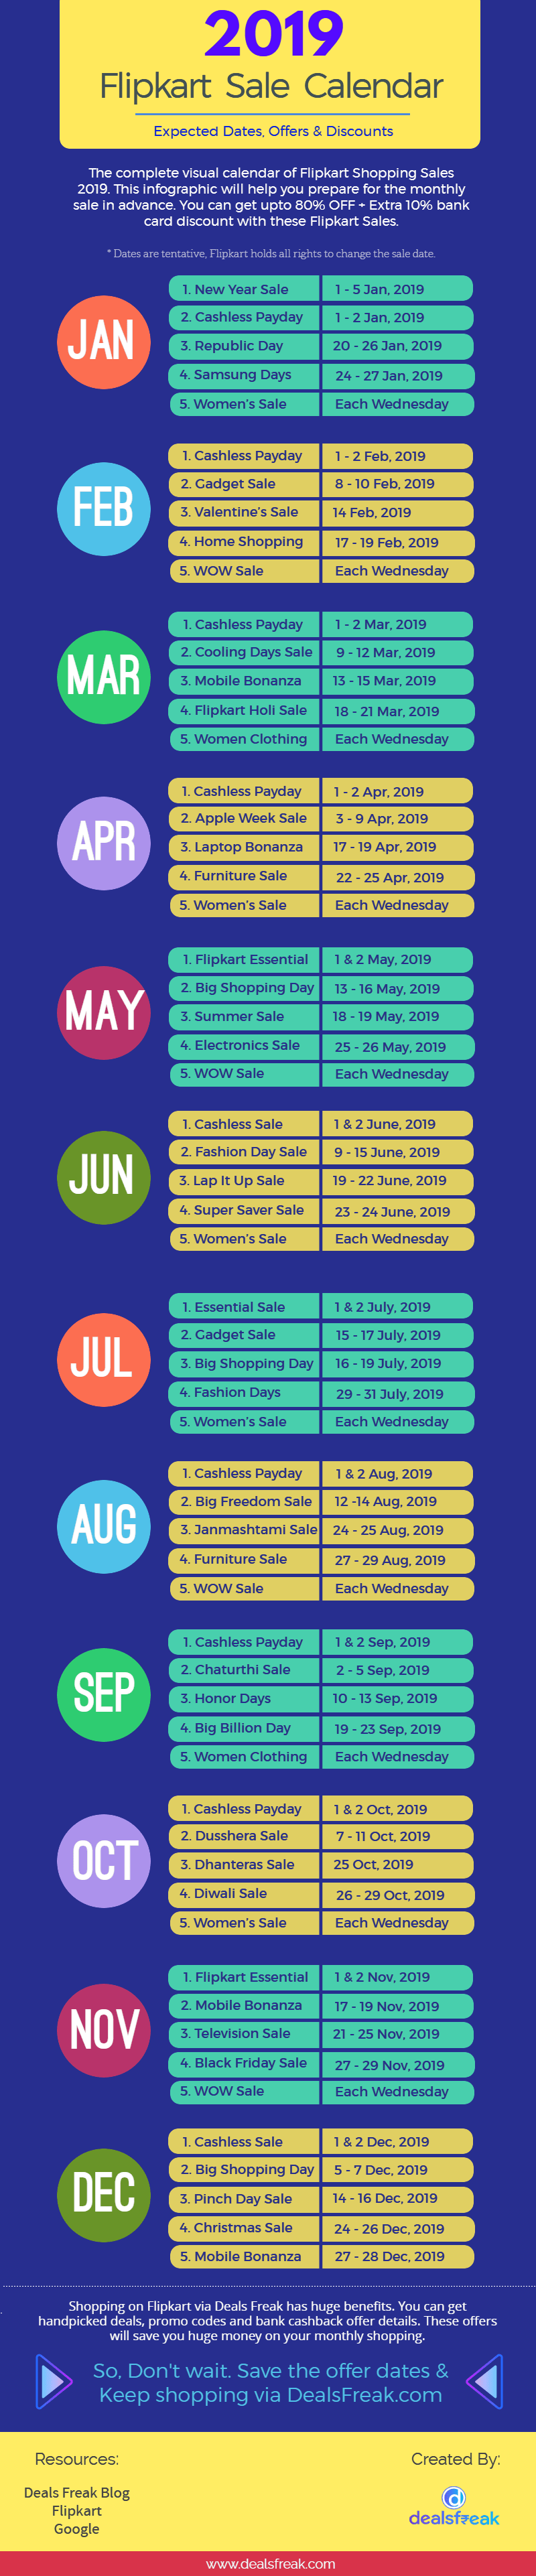 flipkart upcoming sale calendar 2019